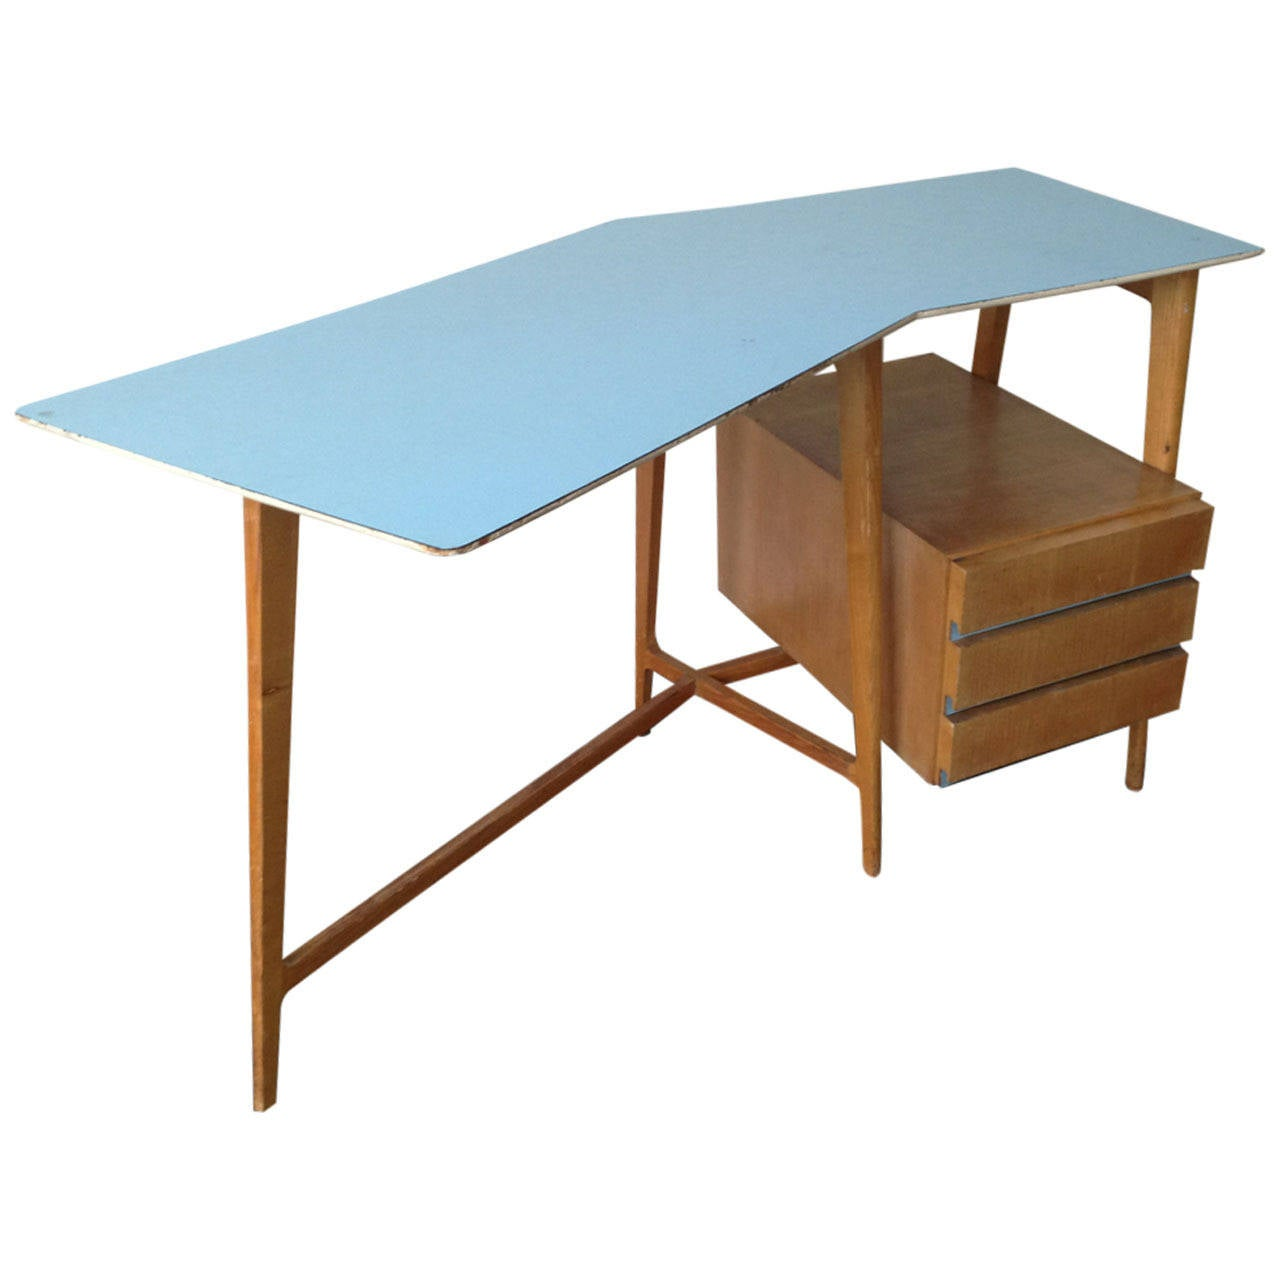 Small Curved Desk with Matching Chair Attributed to Gio Ponti